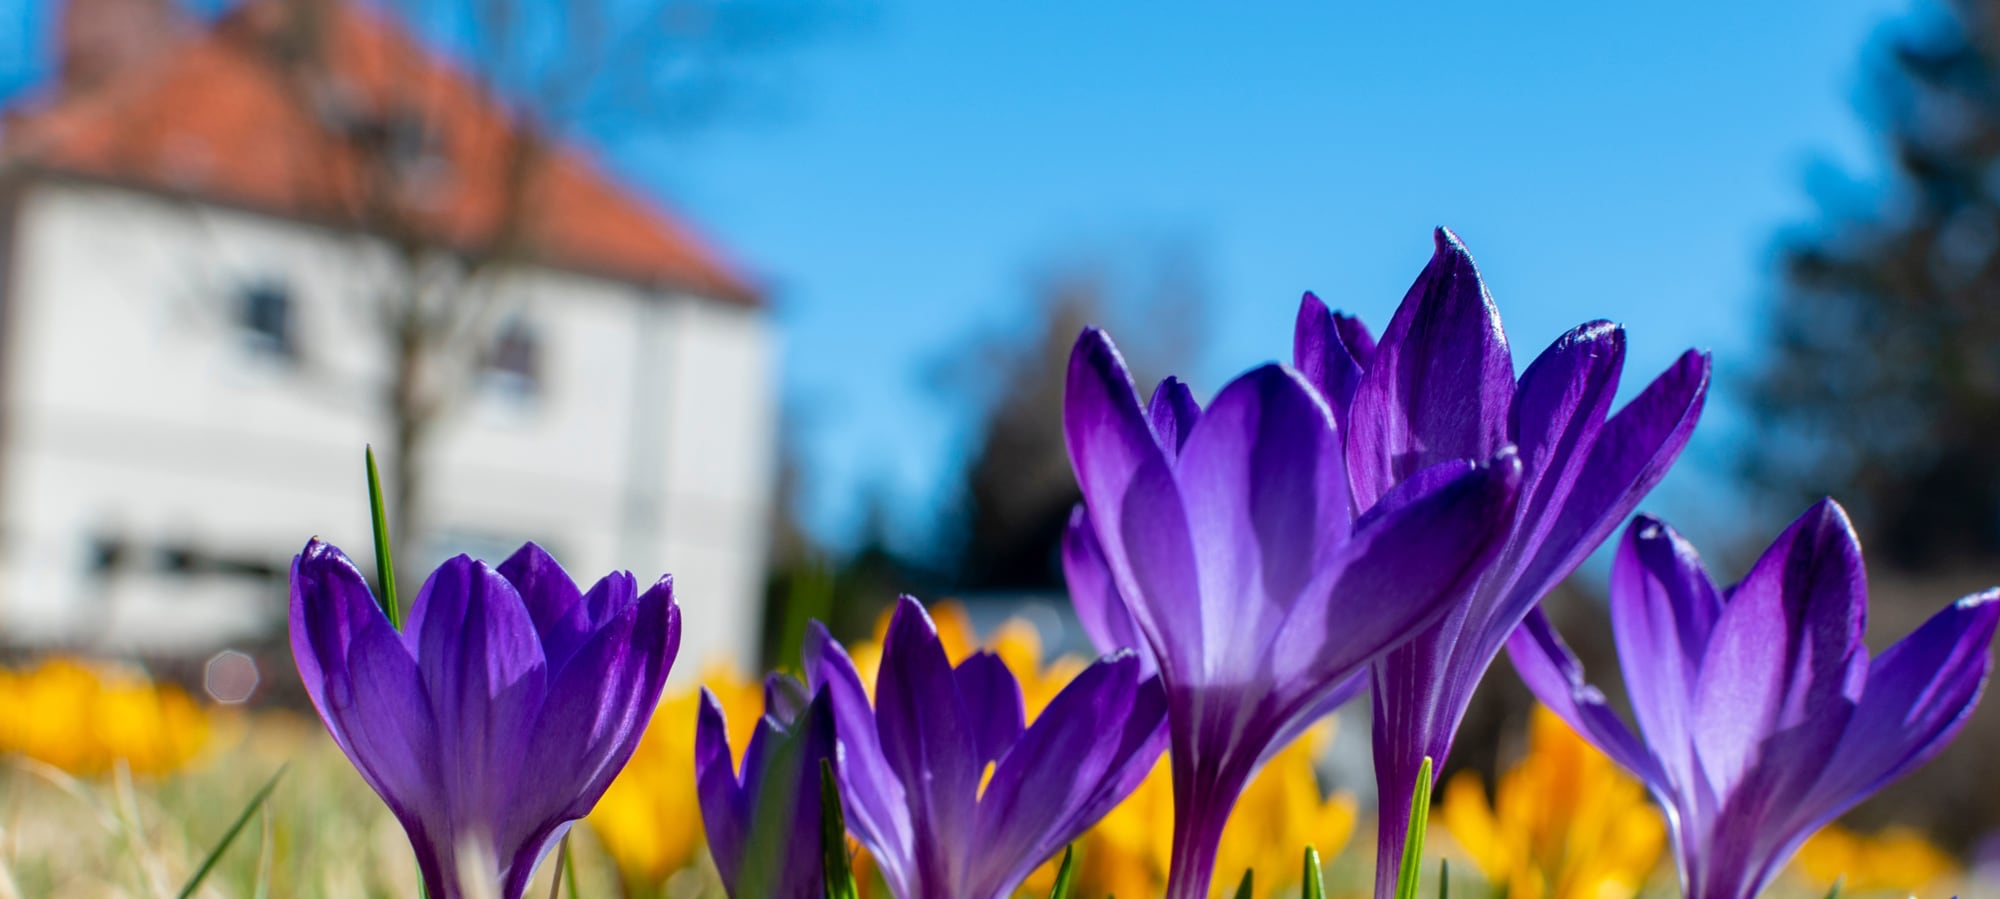 Purple flowers in bloom in front of a house